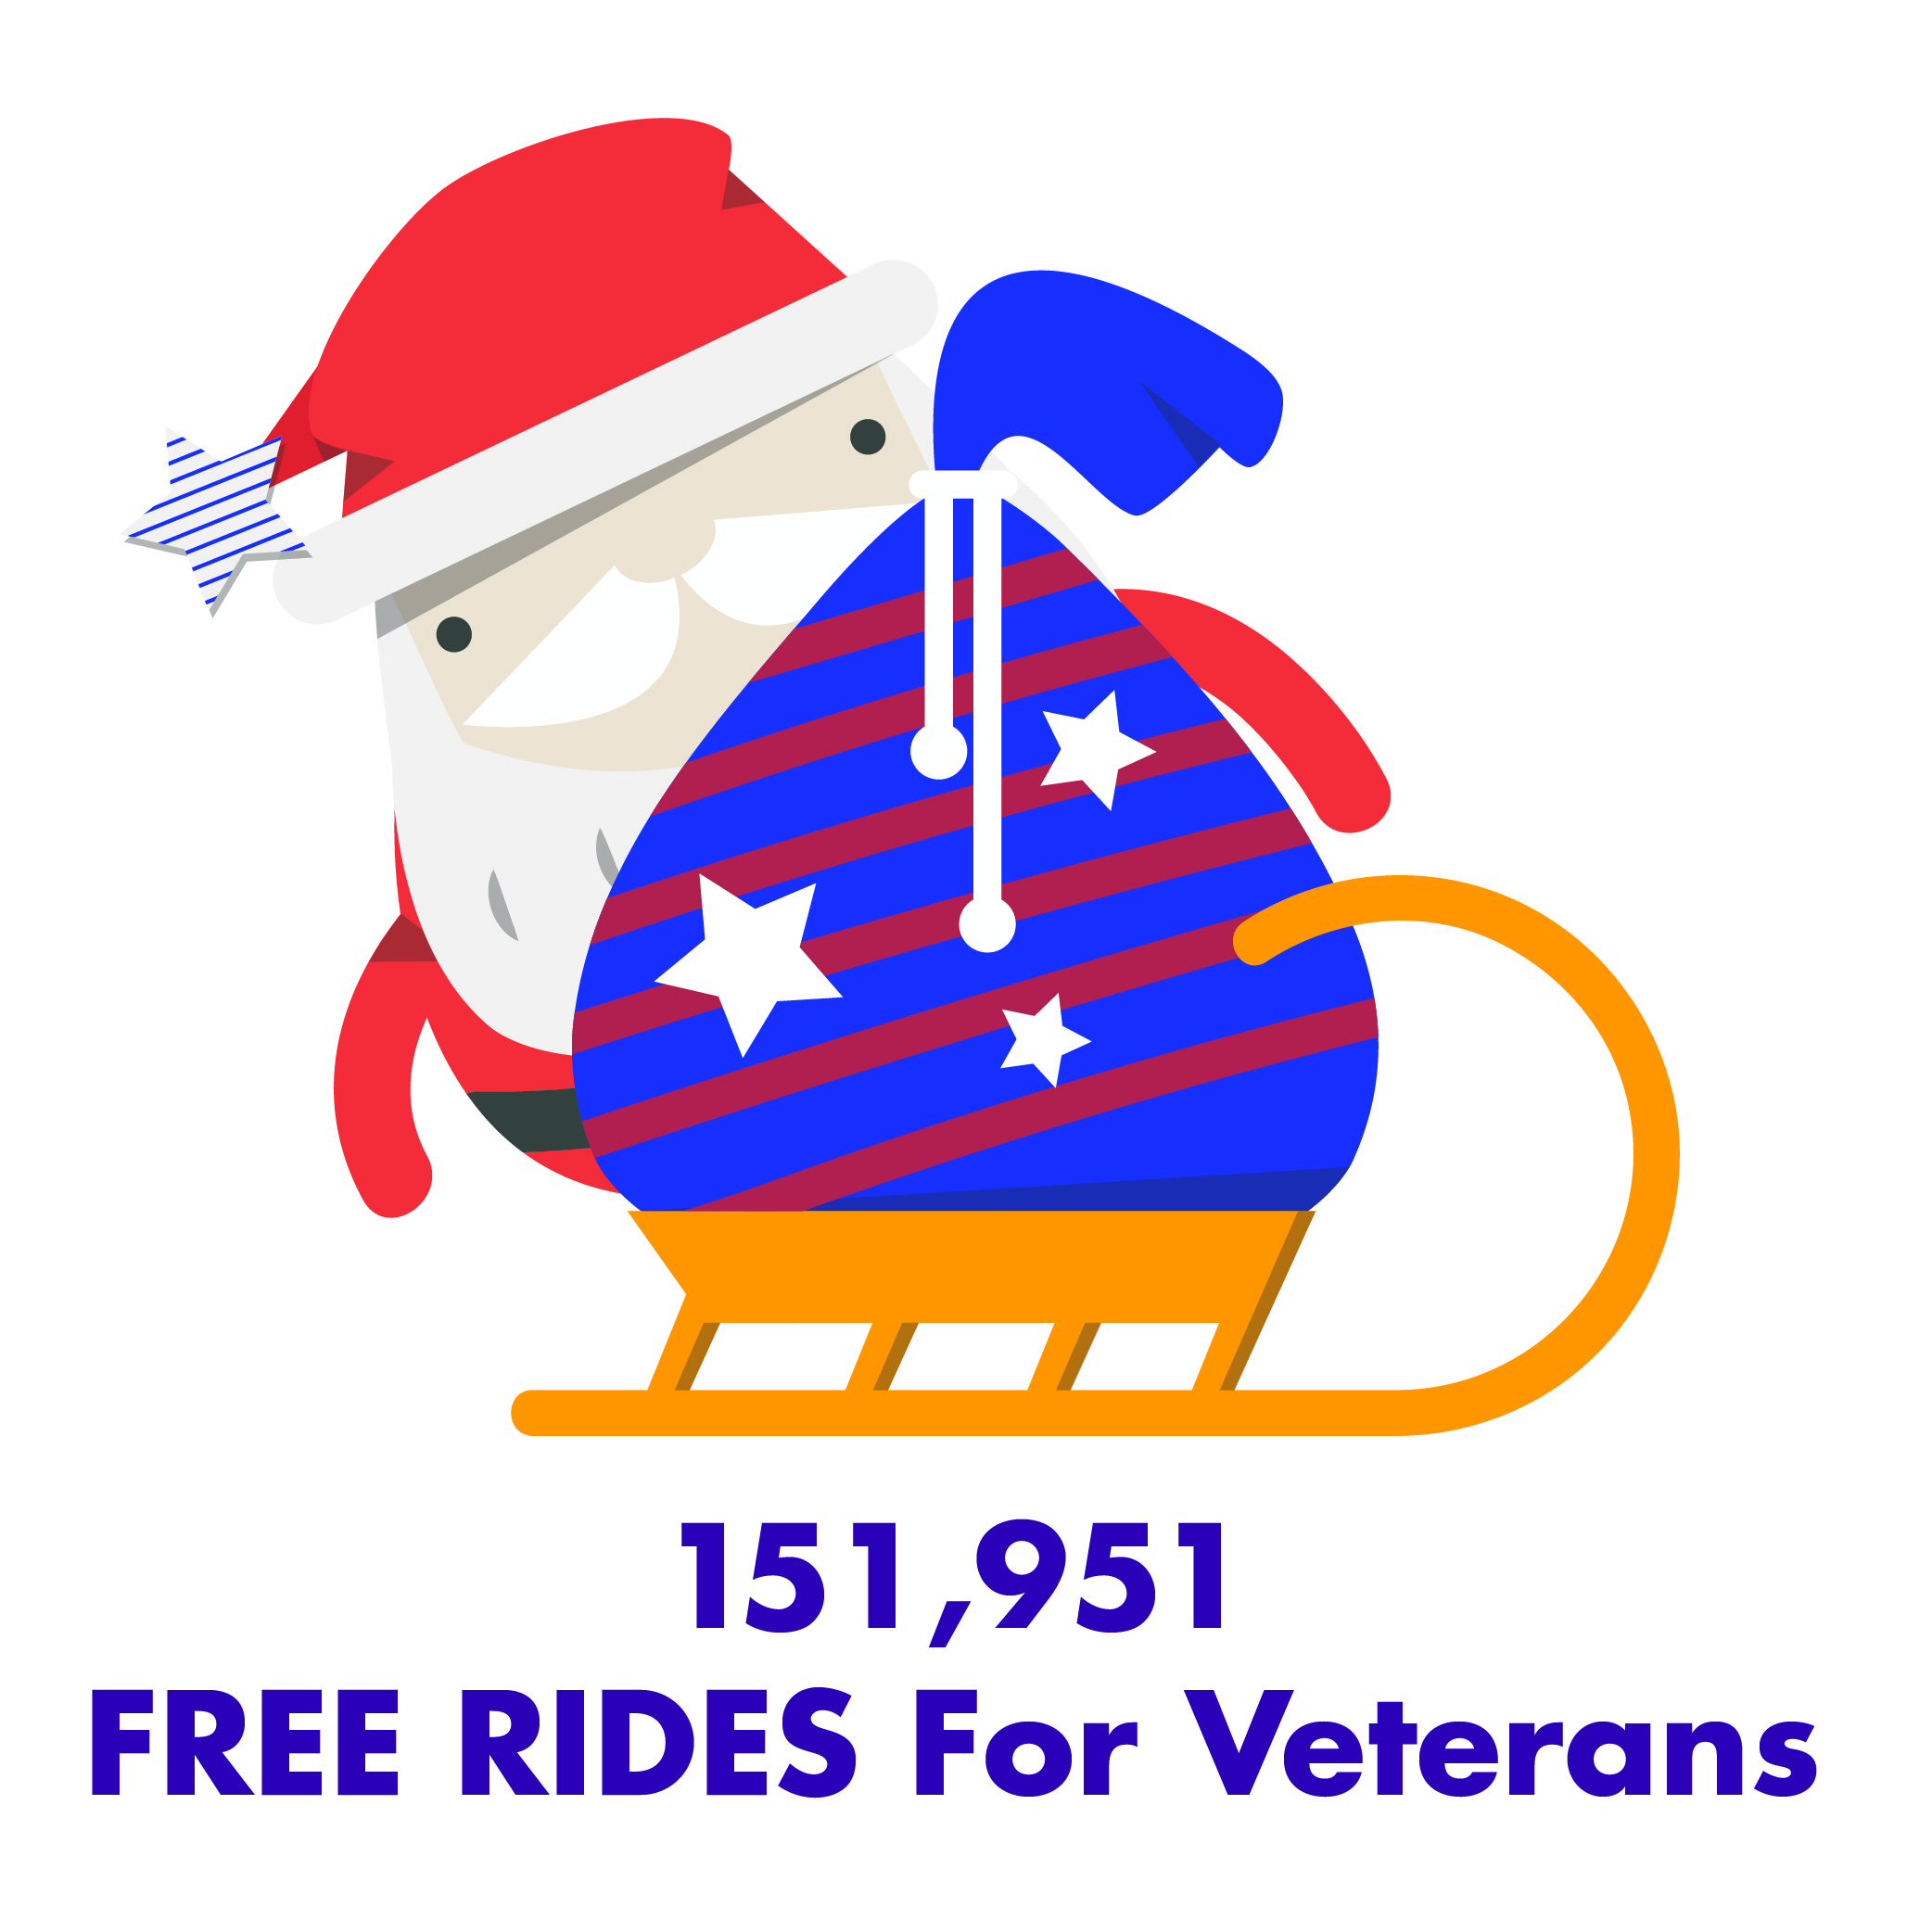 free rides for Veterans provided in 2019.